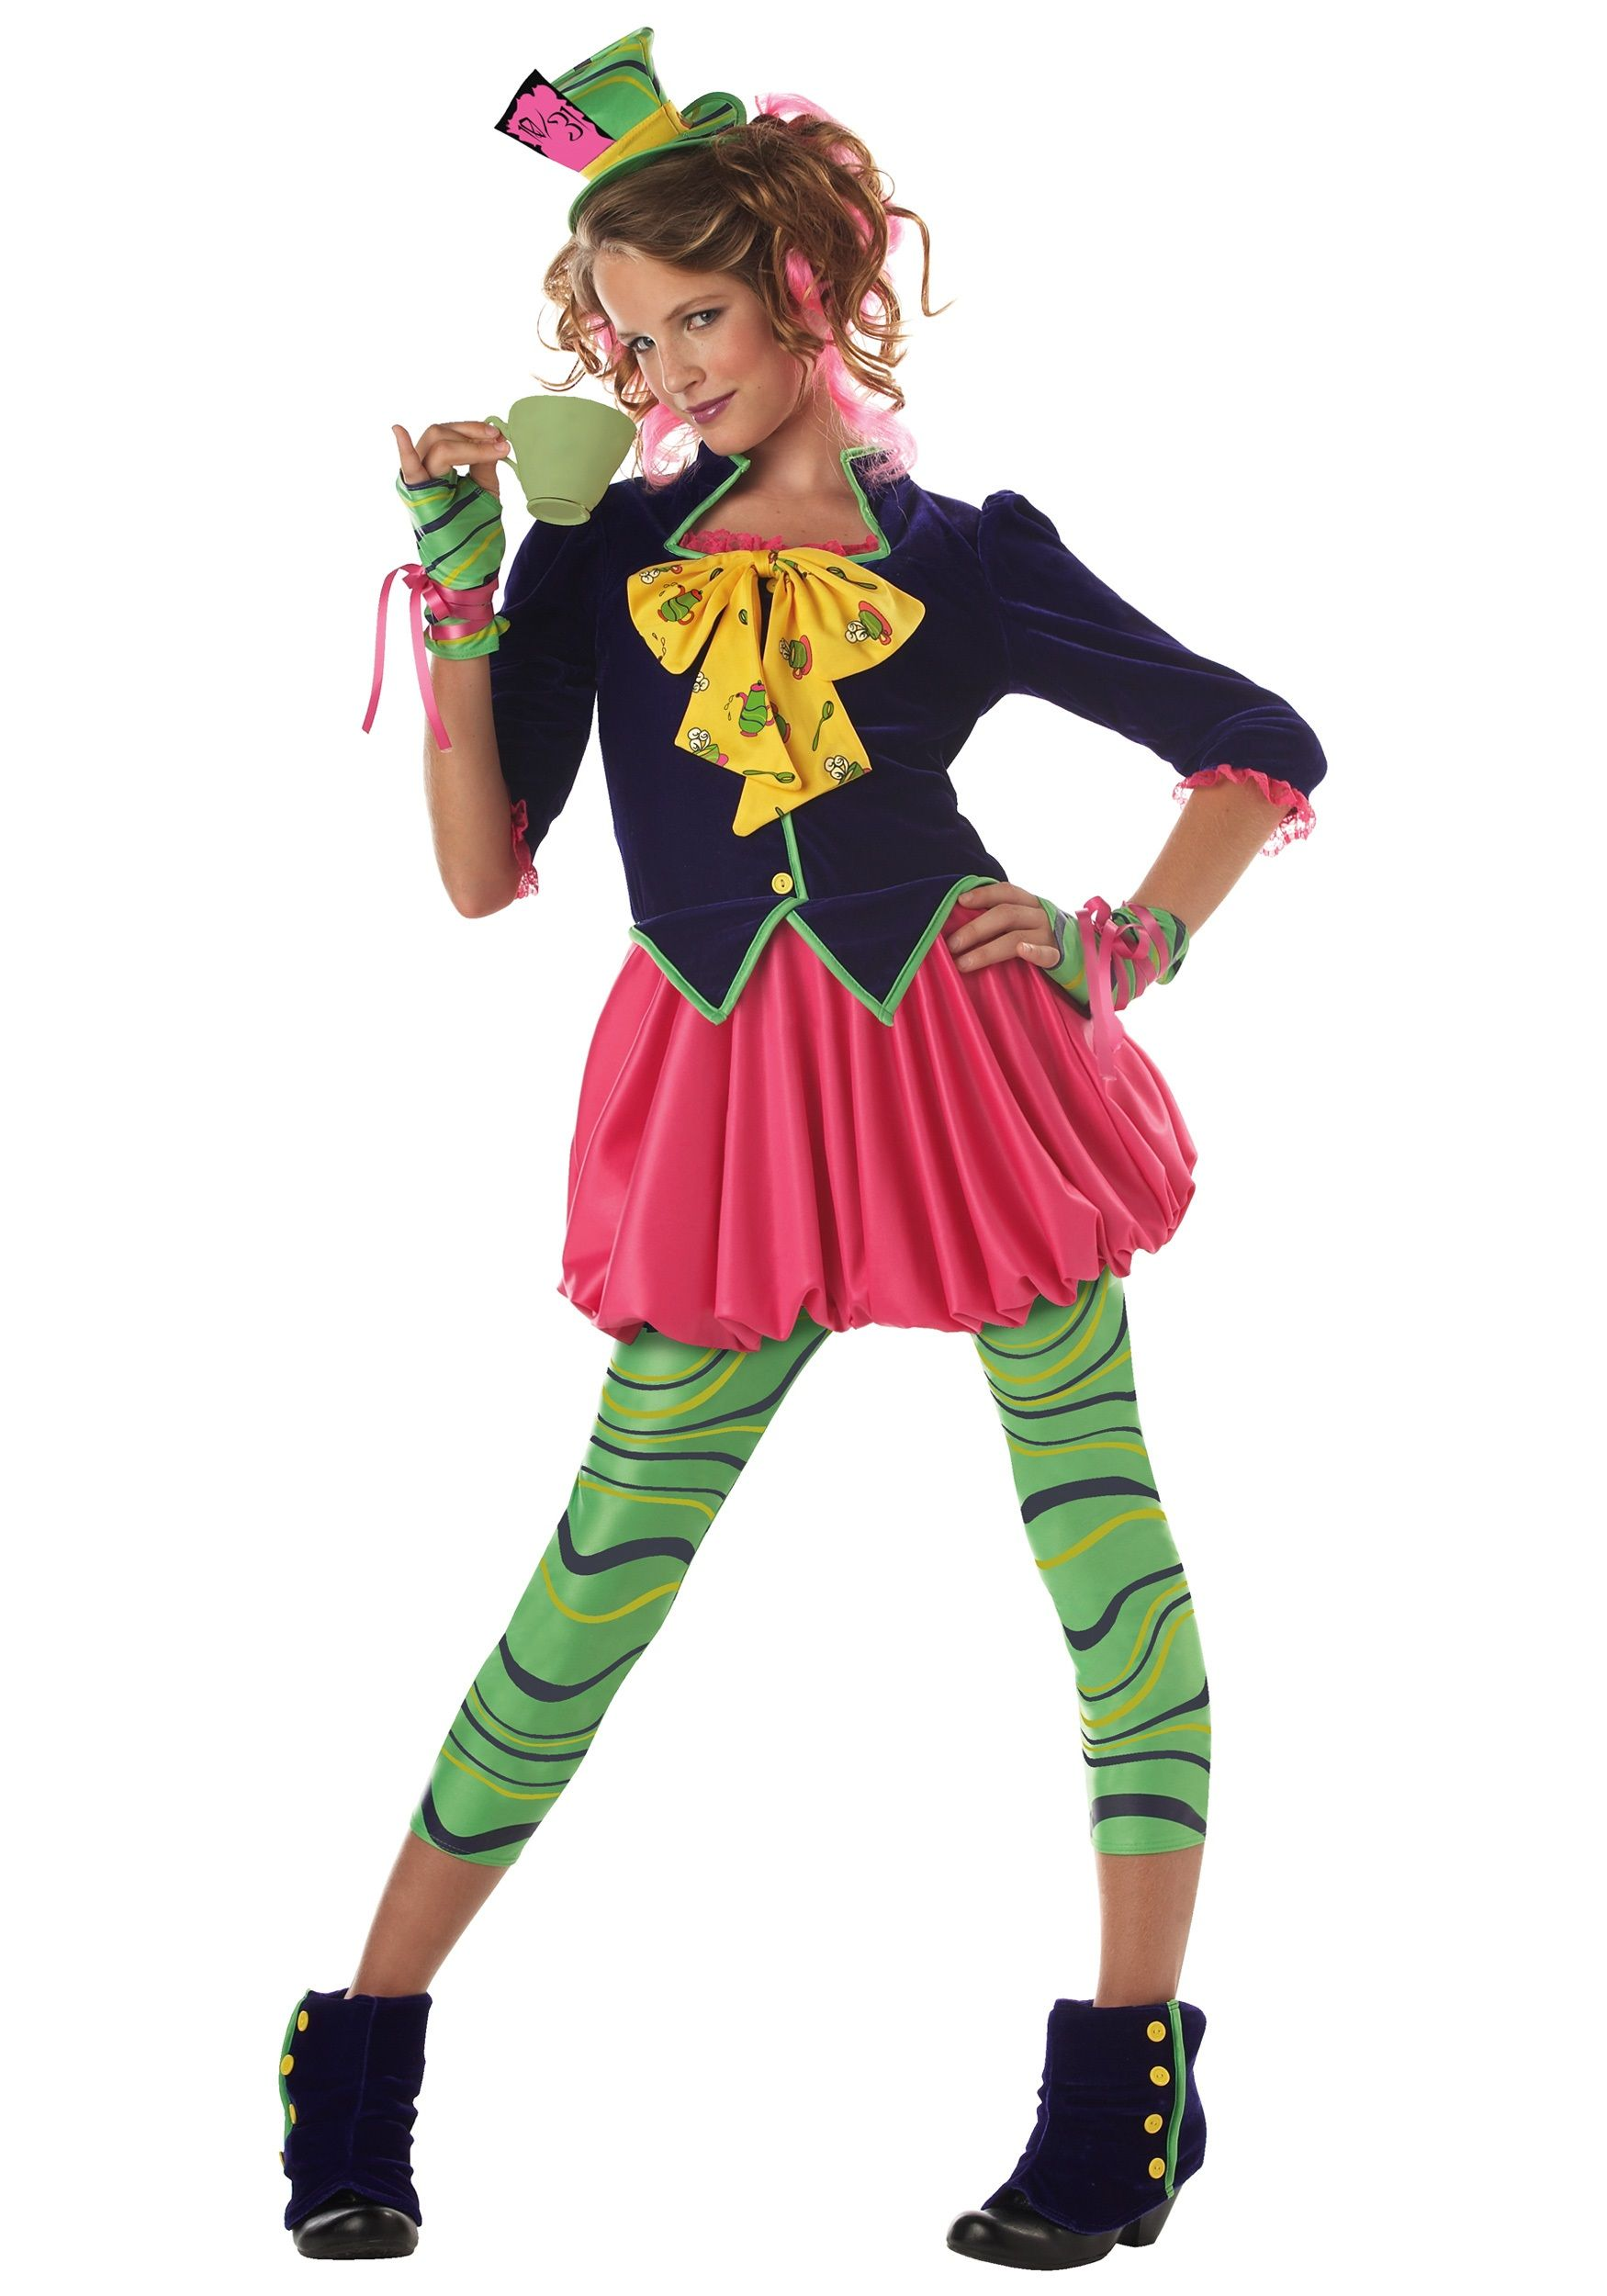 Teen Halloween Costumes - Costumes for Teen Girls and Boys Teen .  sc 1 st  Pinterest & Teen Halloween Costumes - Costumes for Teen Girls and Boys Teen ...